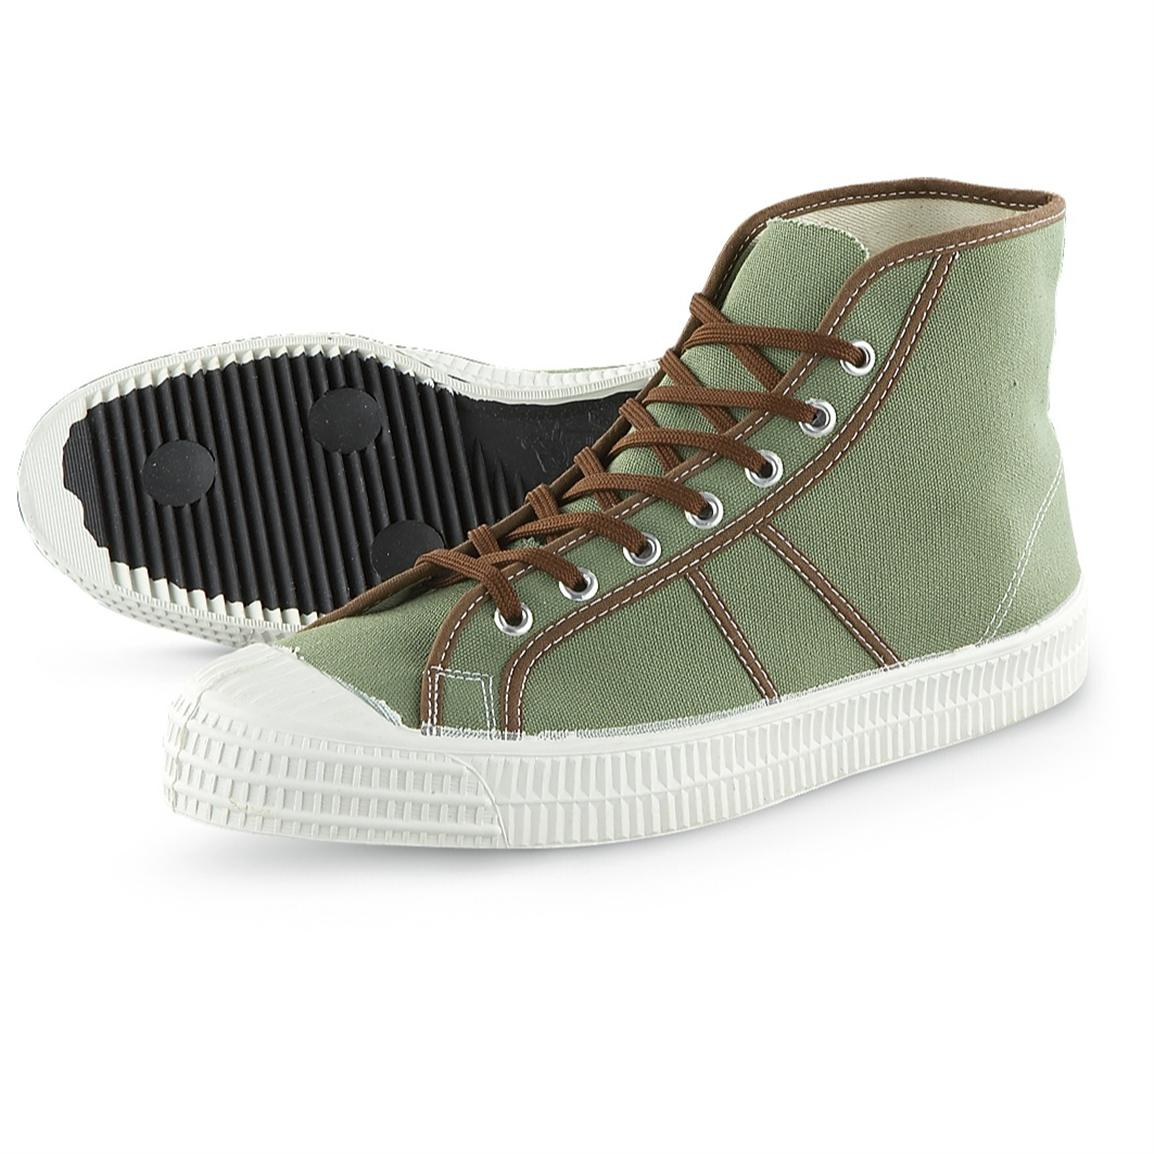 Men's New Czech Military Surplus High-top Sneakers, Green